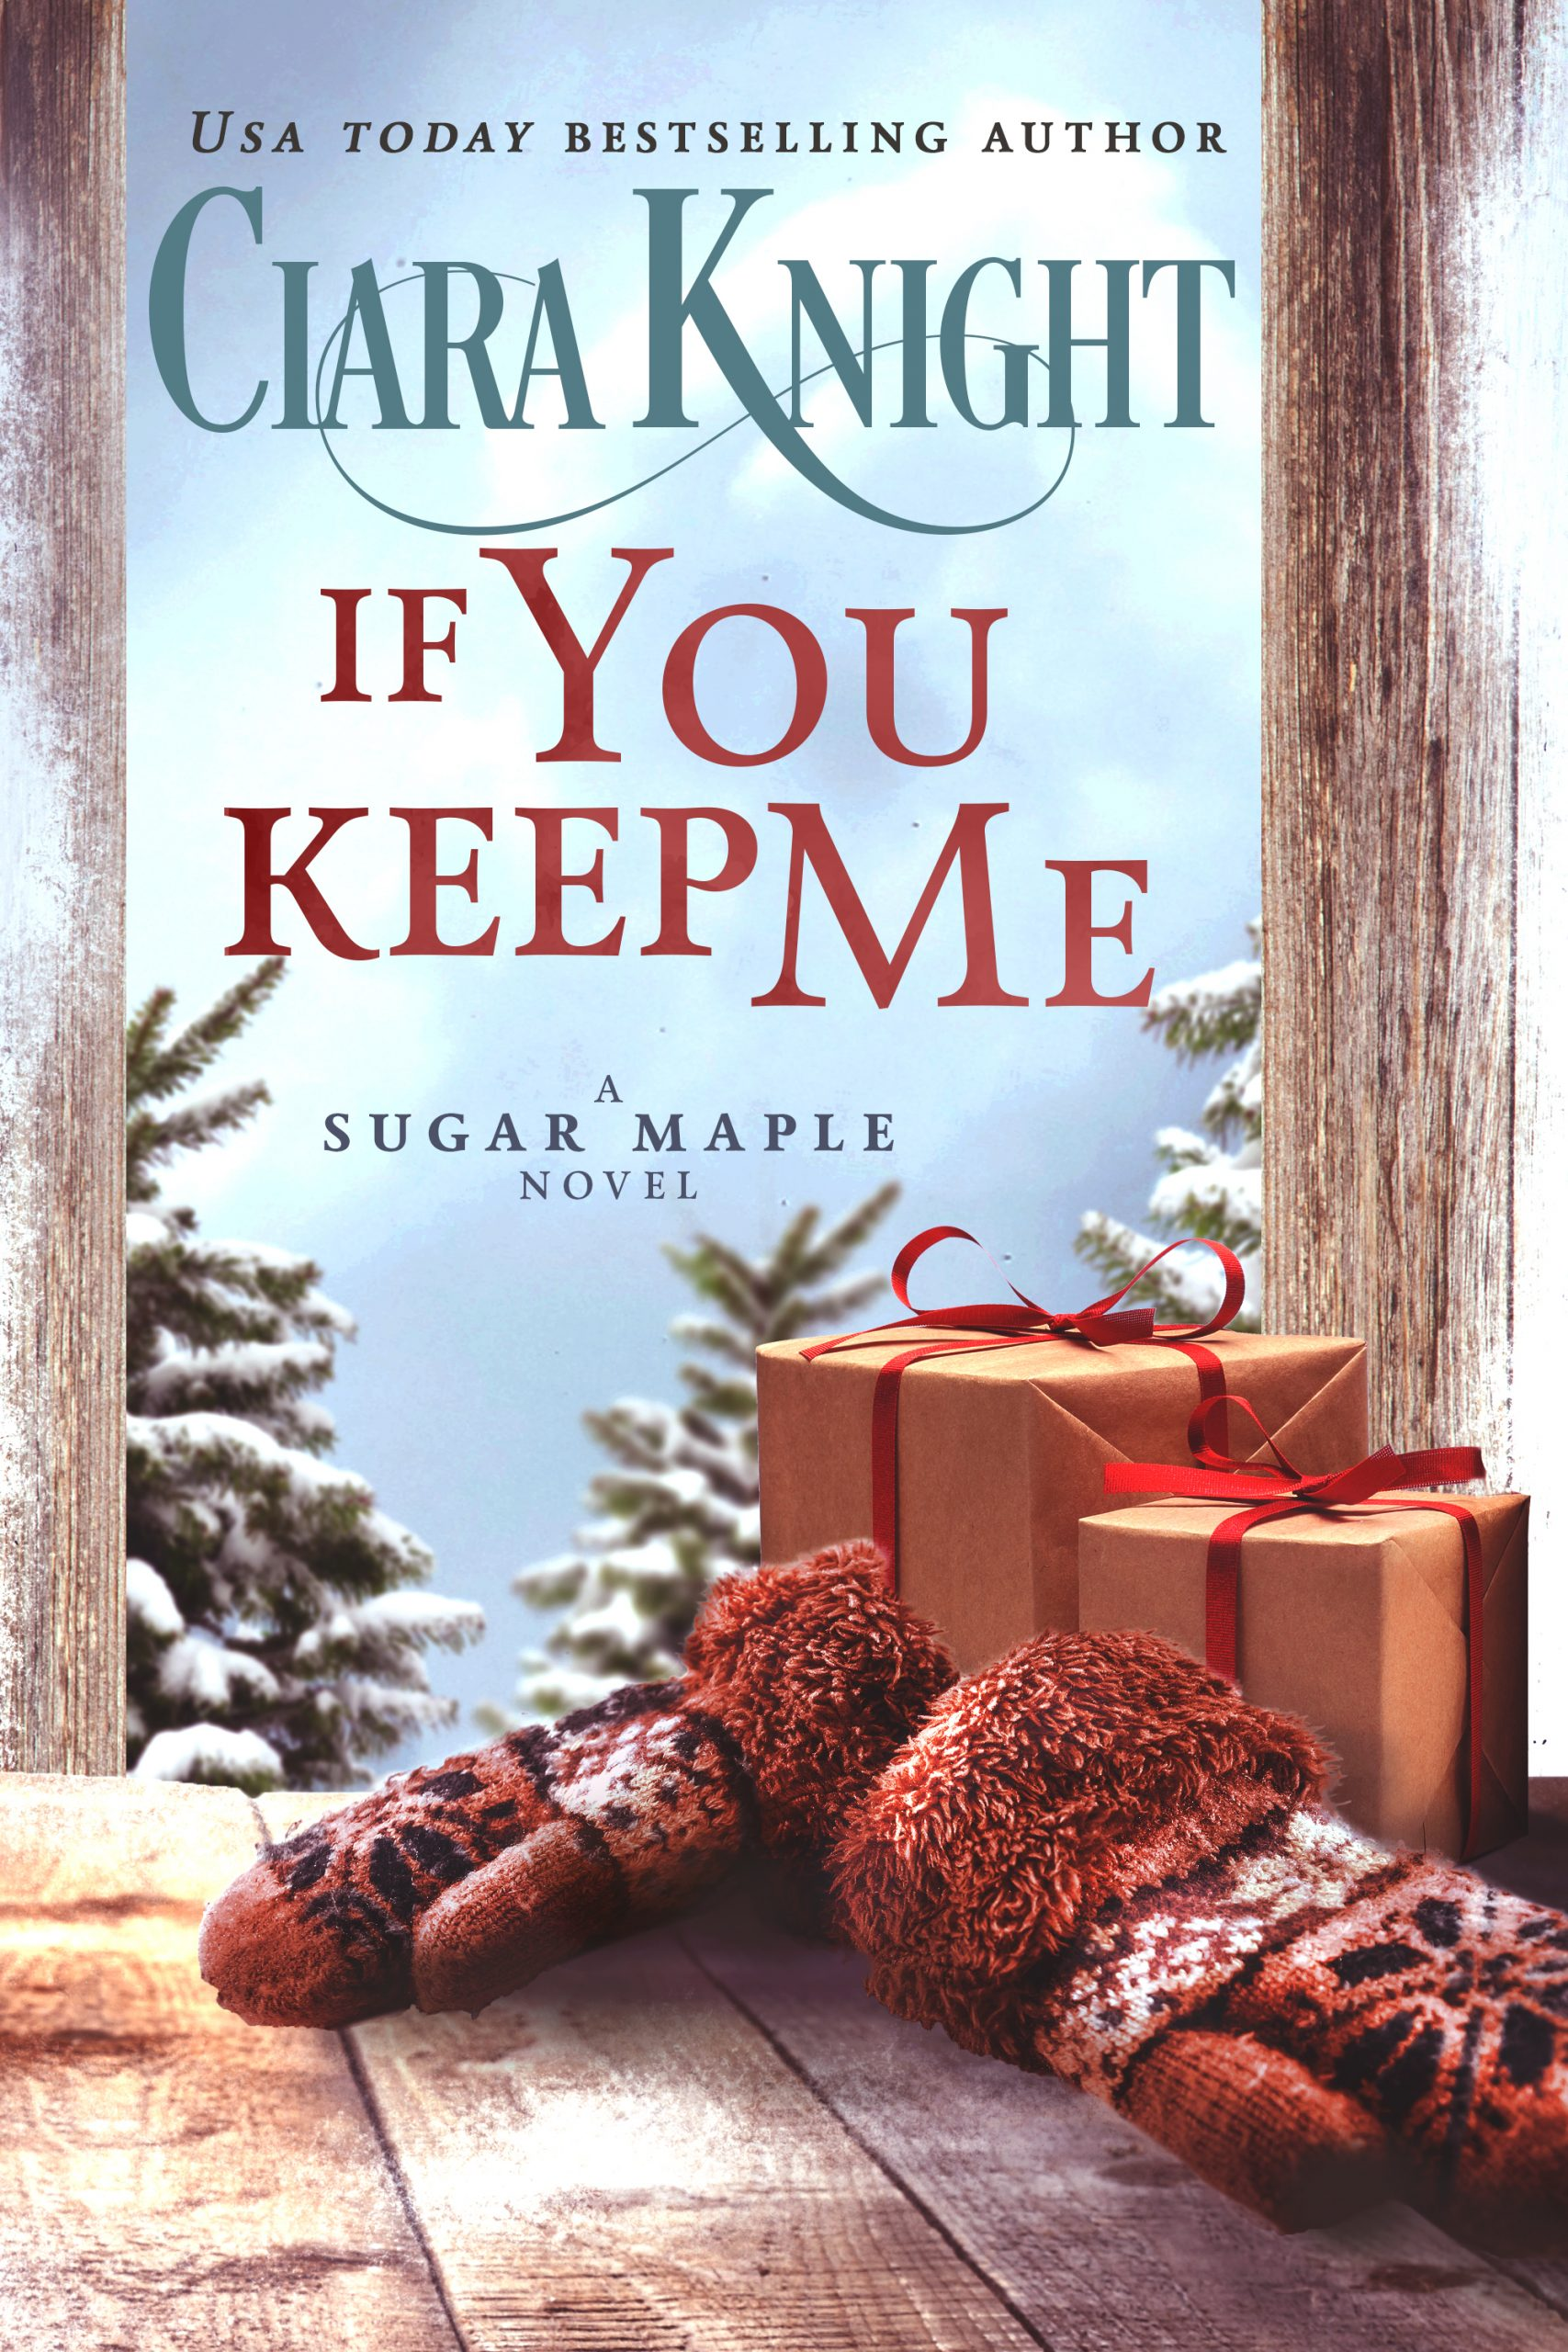 If You Love Me from the Sugar Maple series.